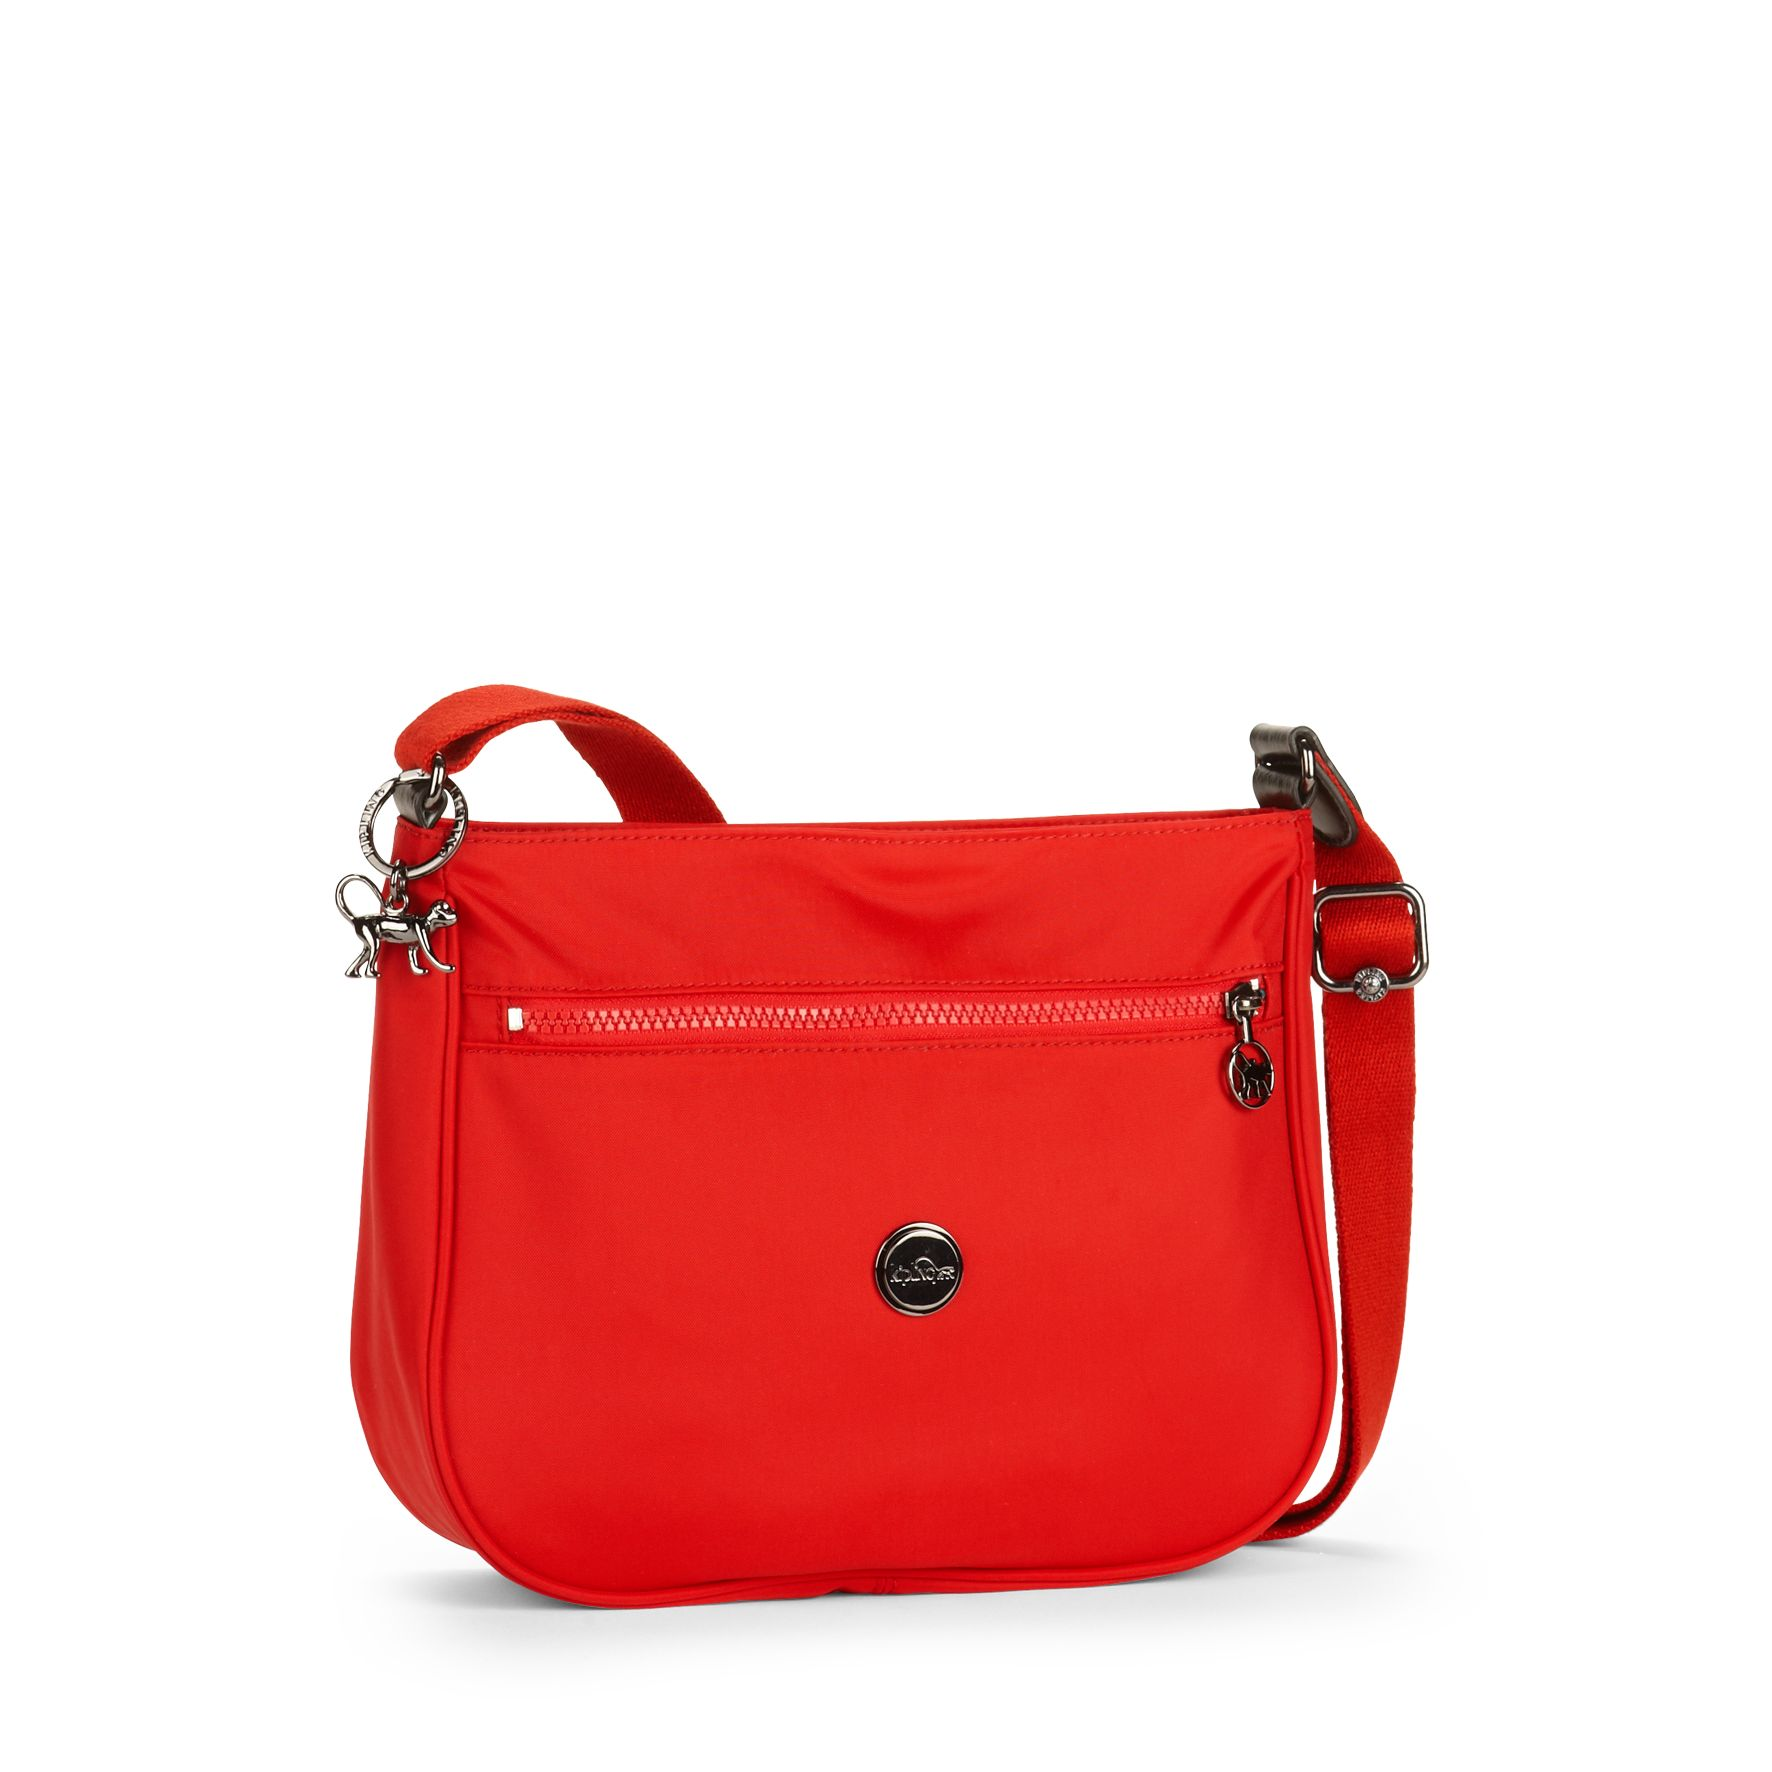 Lunon small shoulder bag